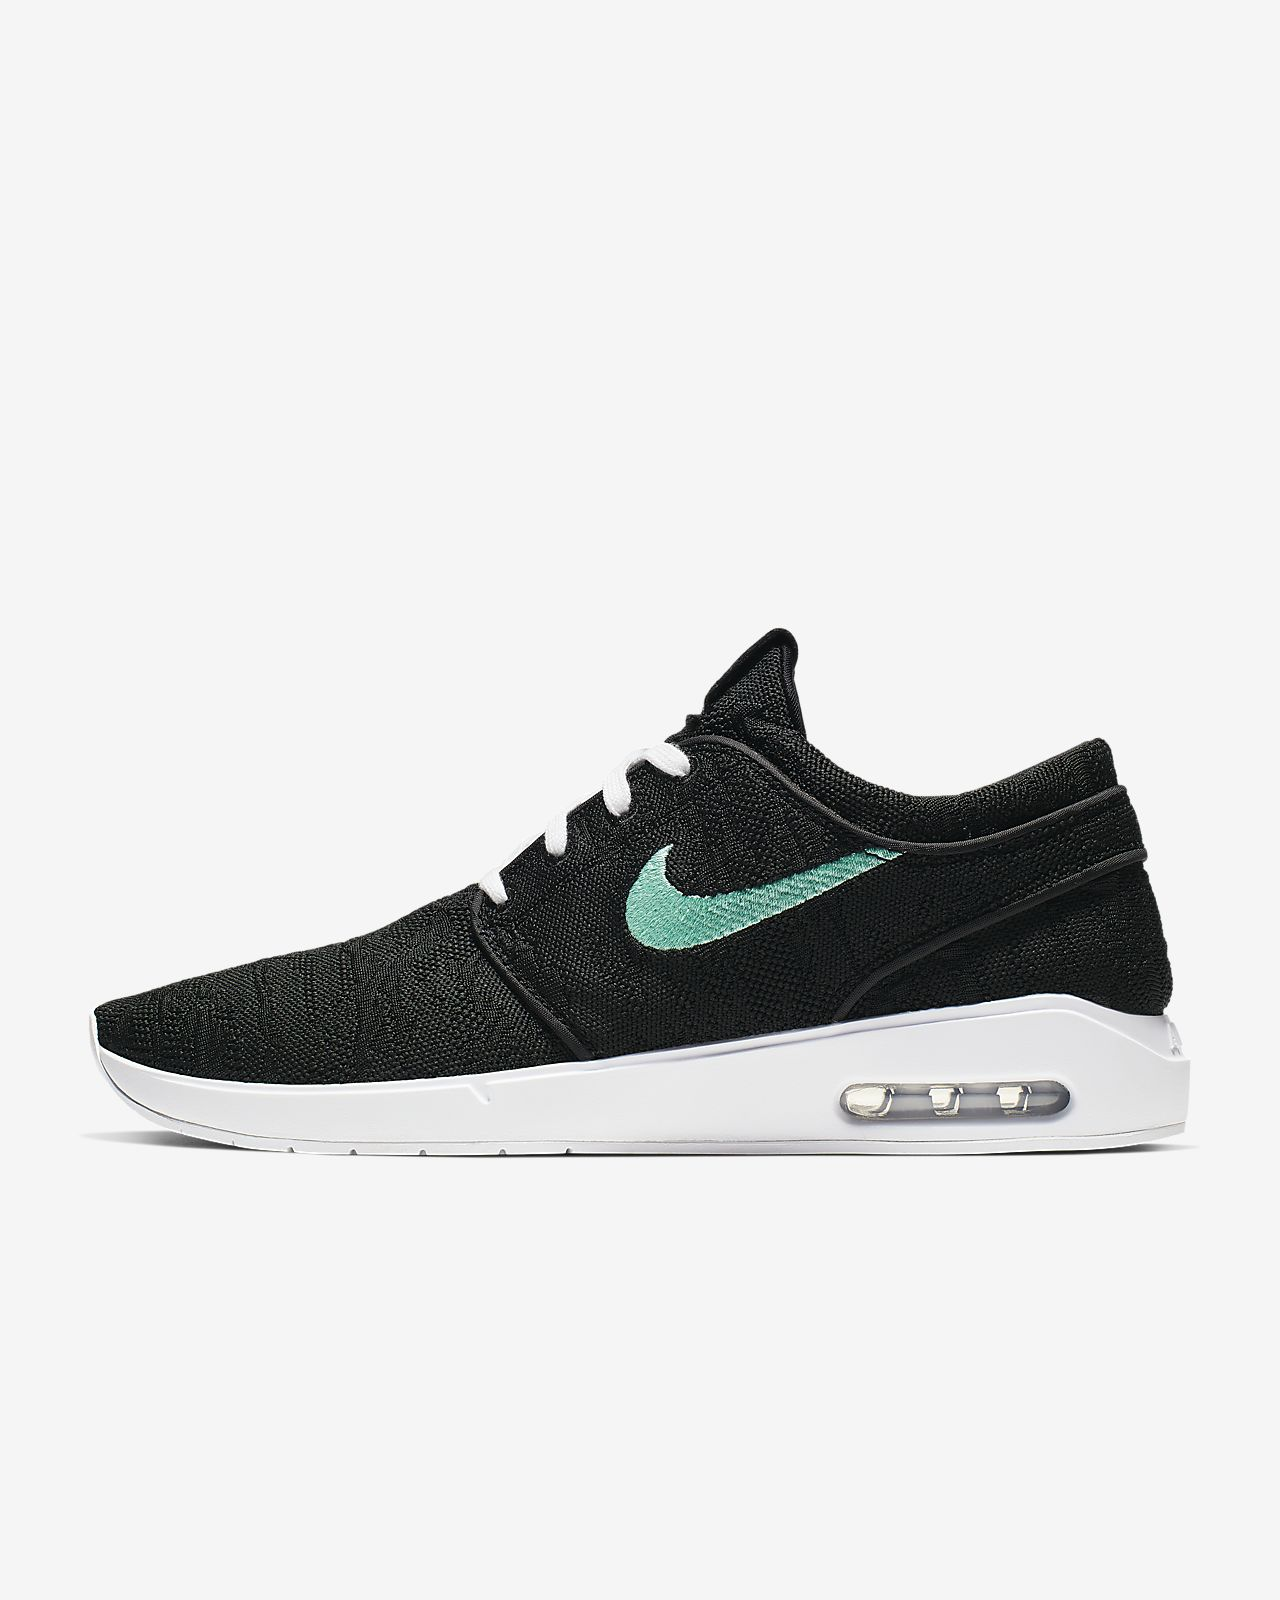 low priced 2e8f4 8d914 Nike SB Air Max Stefan Janoski 2